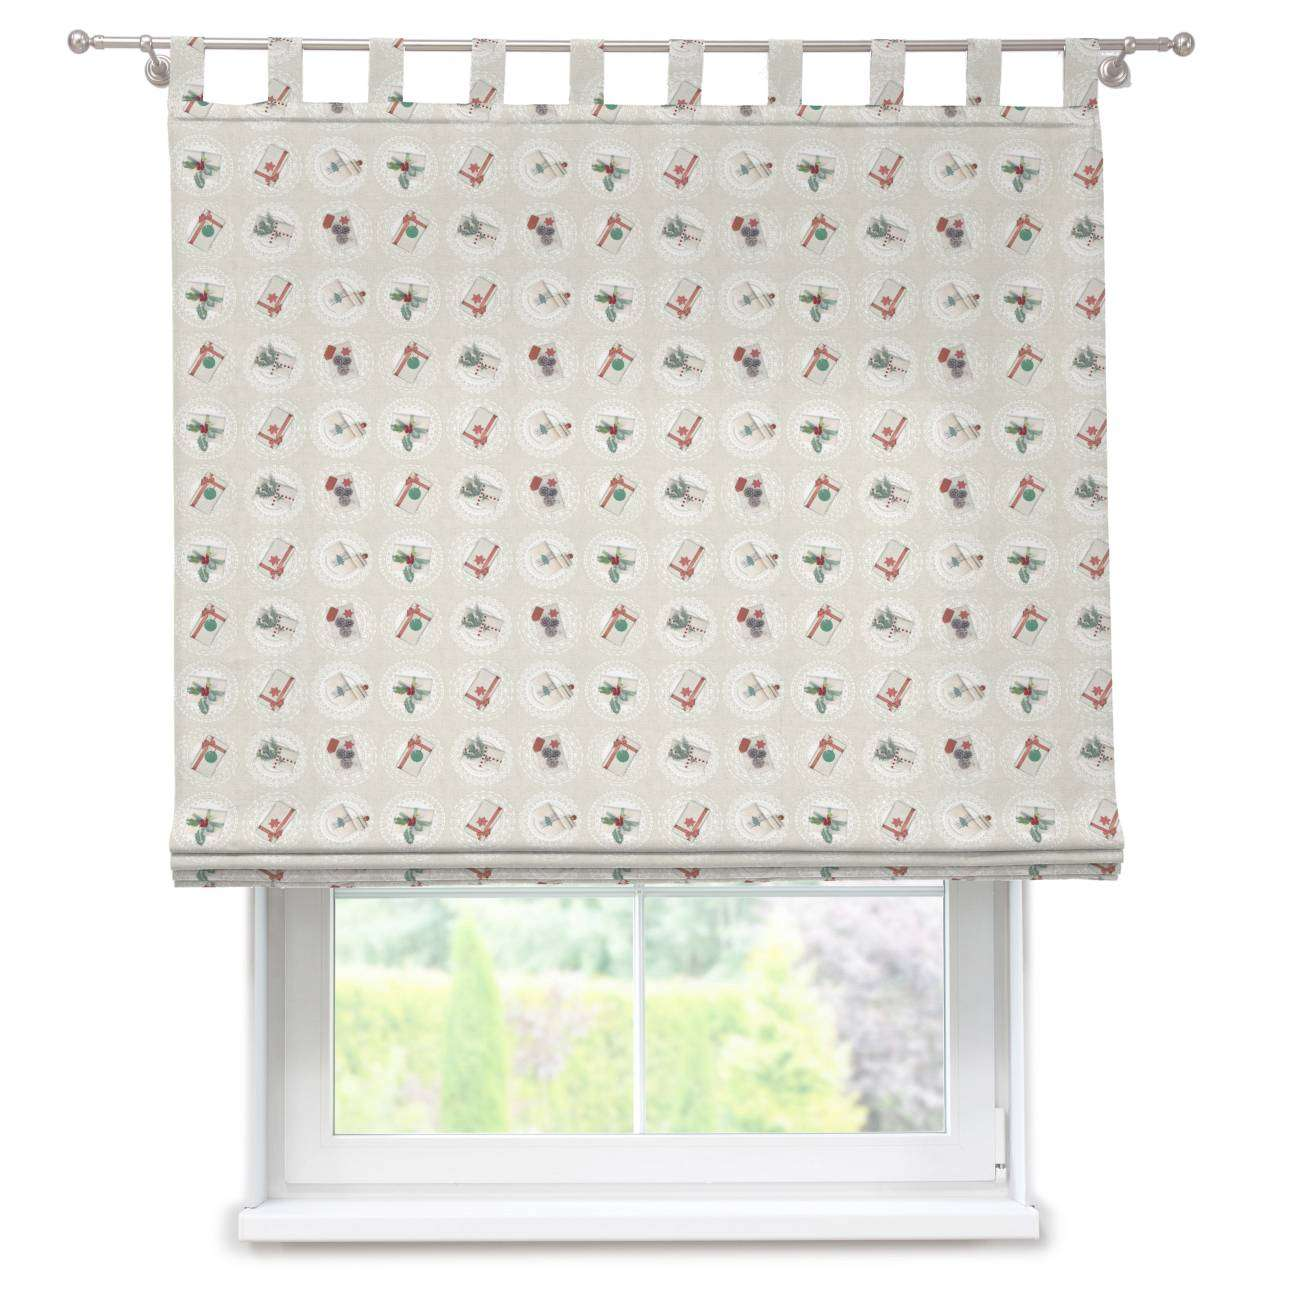 Verona tab top roman blind 80 x 170 cm (31.5 x 67 inch) in collection Christmas , fabric: 629-30